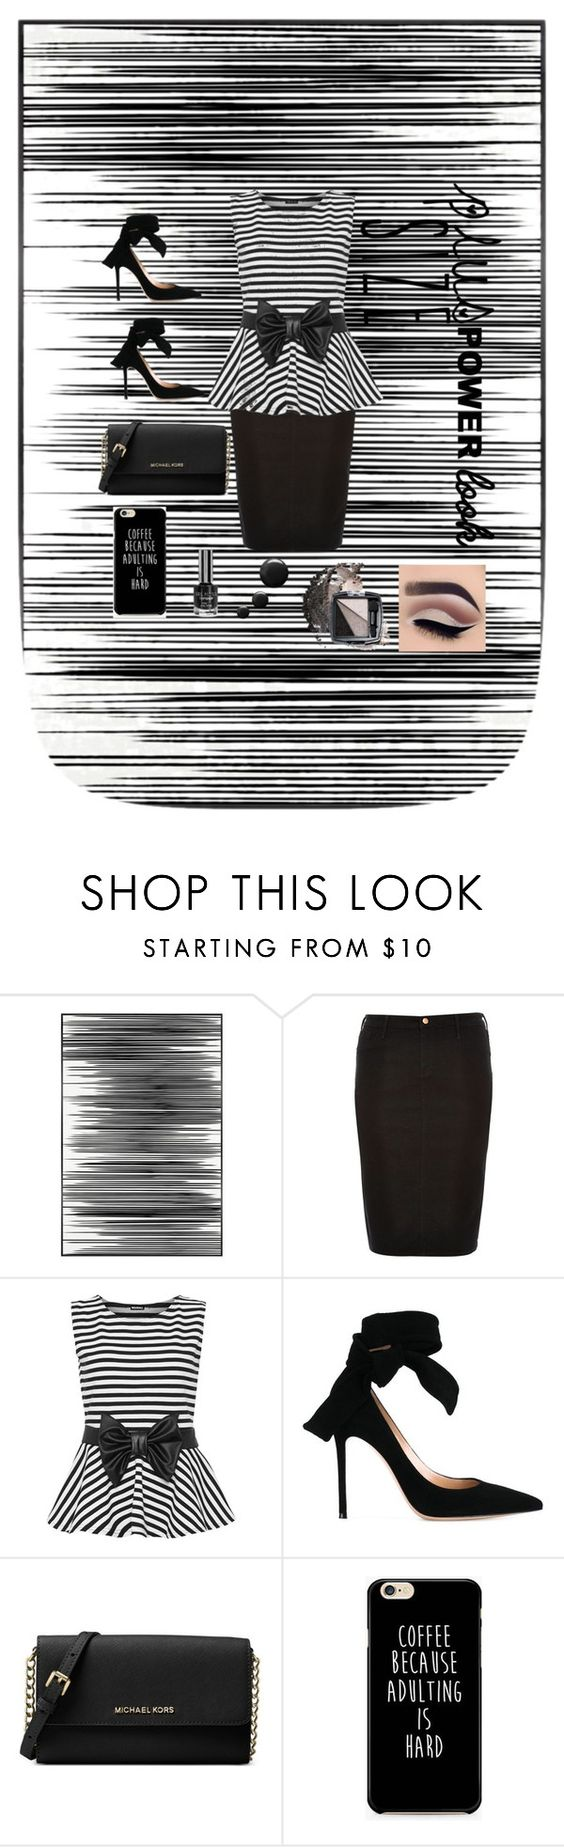 """Plus Size can be #Powerfull"" by nabillajonathan ❤ liked on Polyvore featuring Art Addiction, River Island, WearAll, Gianvito Rossi, Michael Kors, Avon and powerlook"